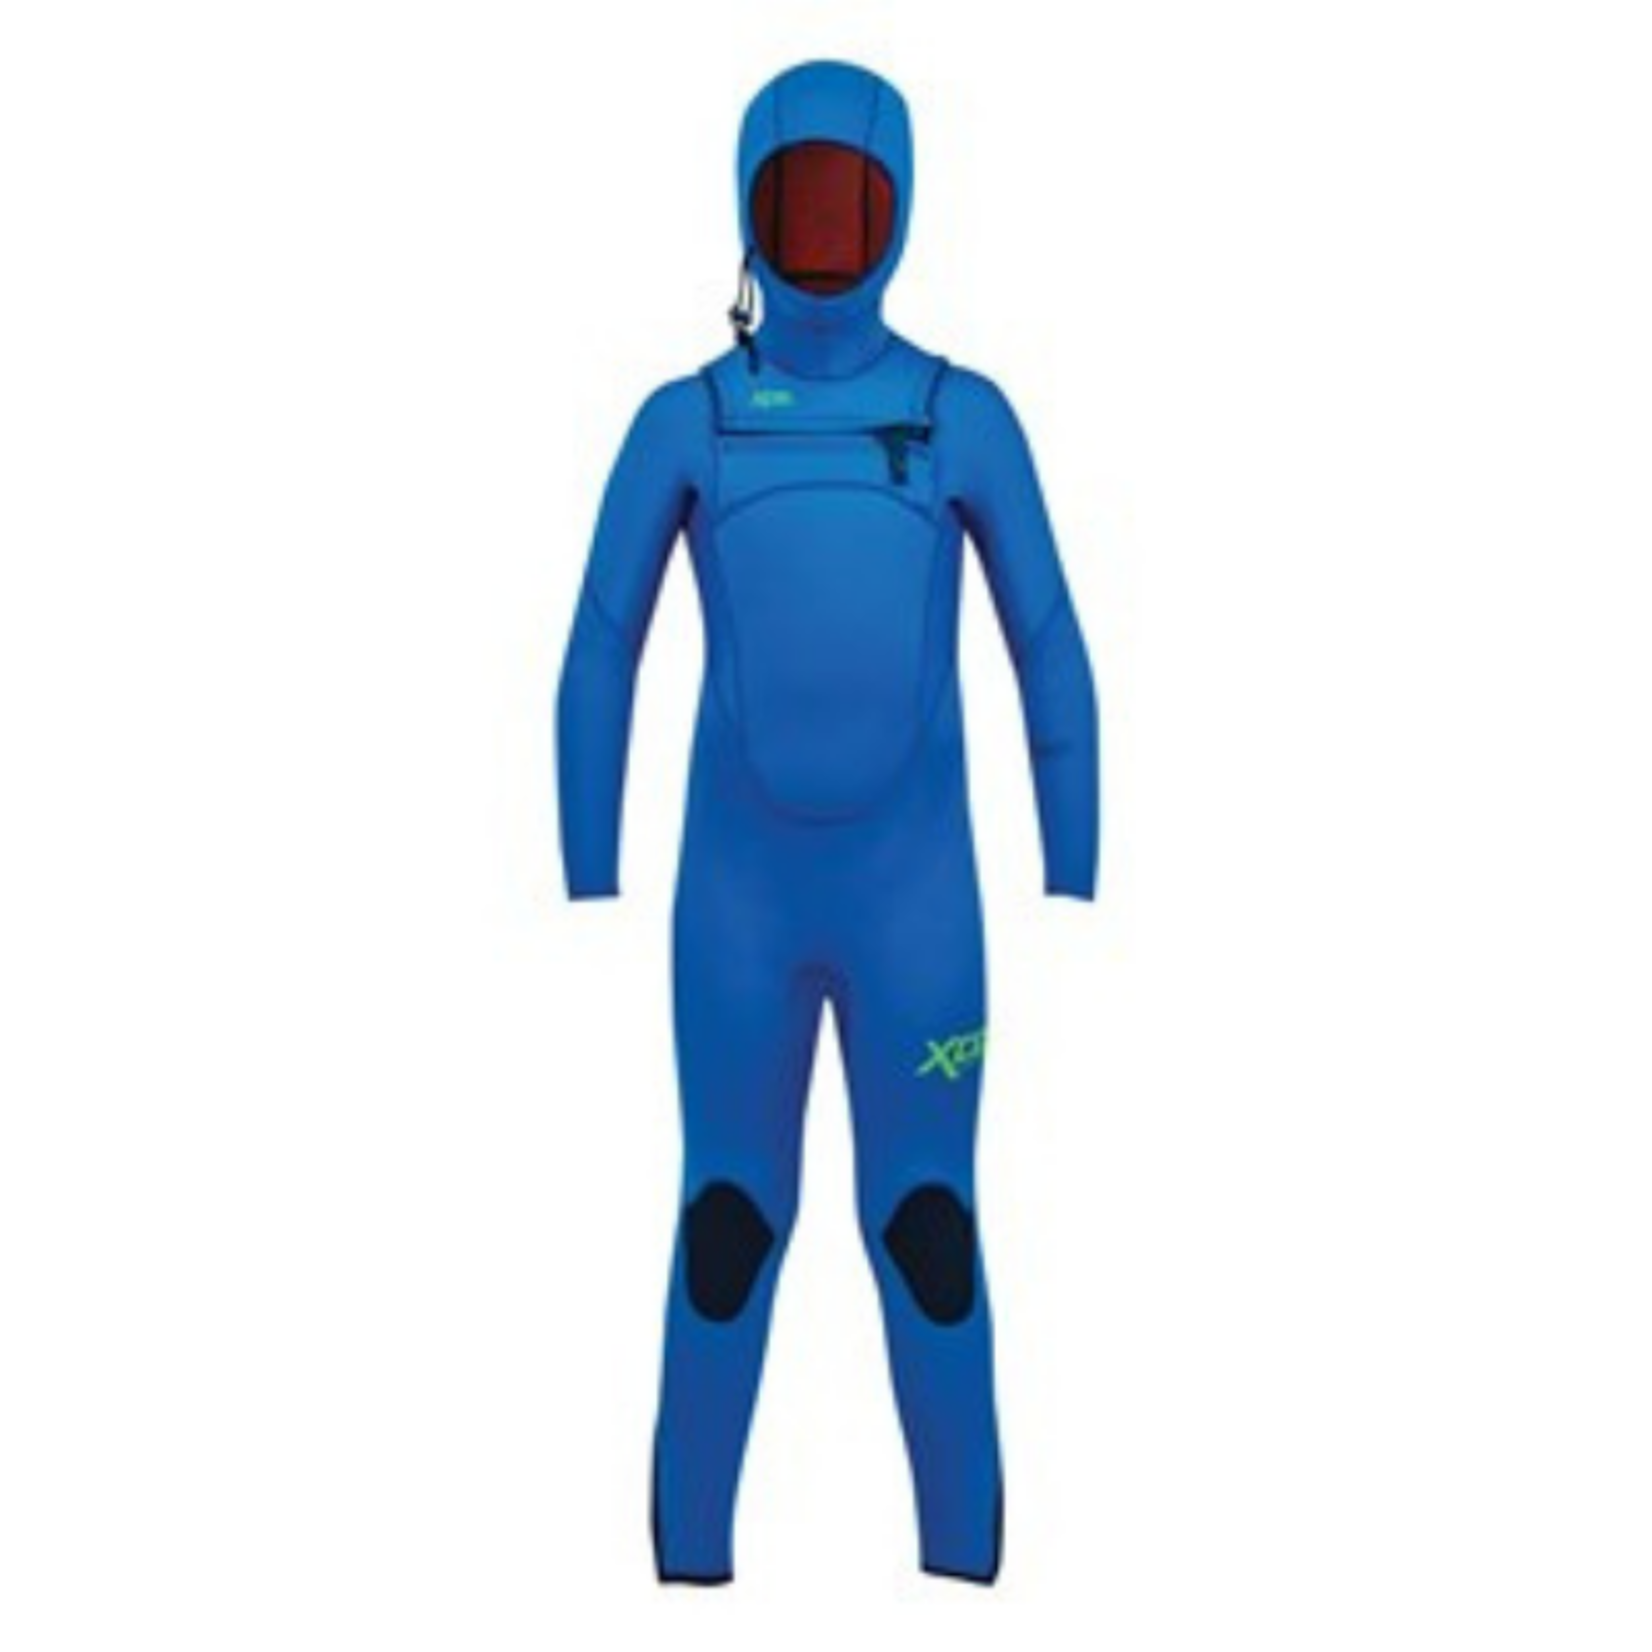 XCEL XCEL Youth Comp 4.5/3.5mm Hooded Wetsuit.